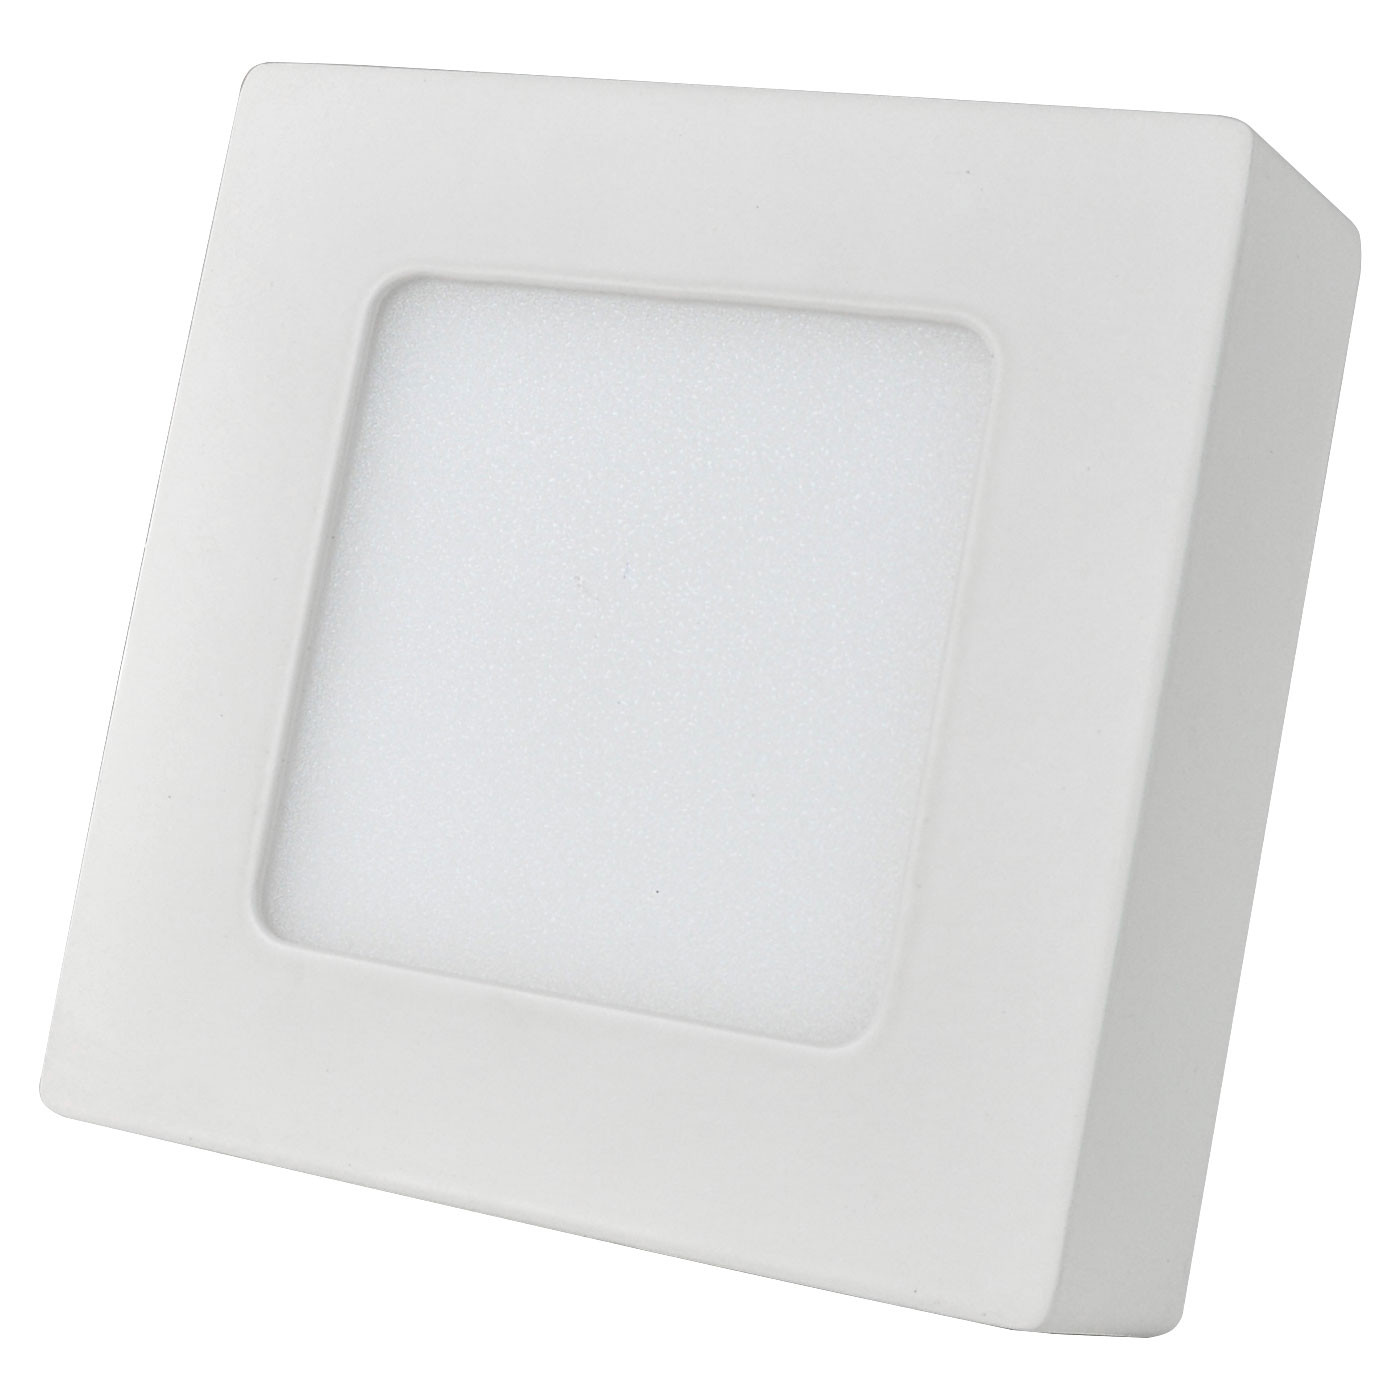 MENGS® 6W Square LED Ceiling Light 30x 2835 SMD LED Recessed Panel Lamp in Cool White Energy-saving Light